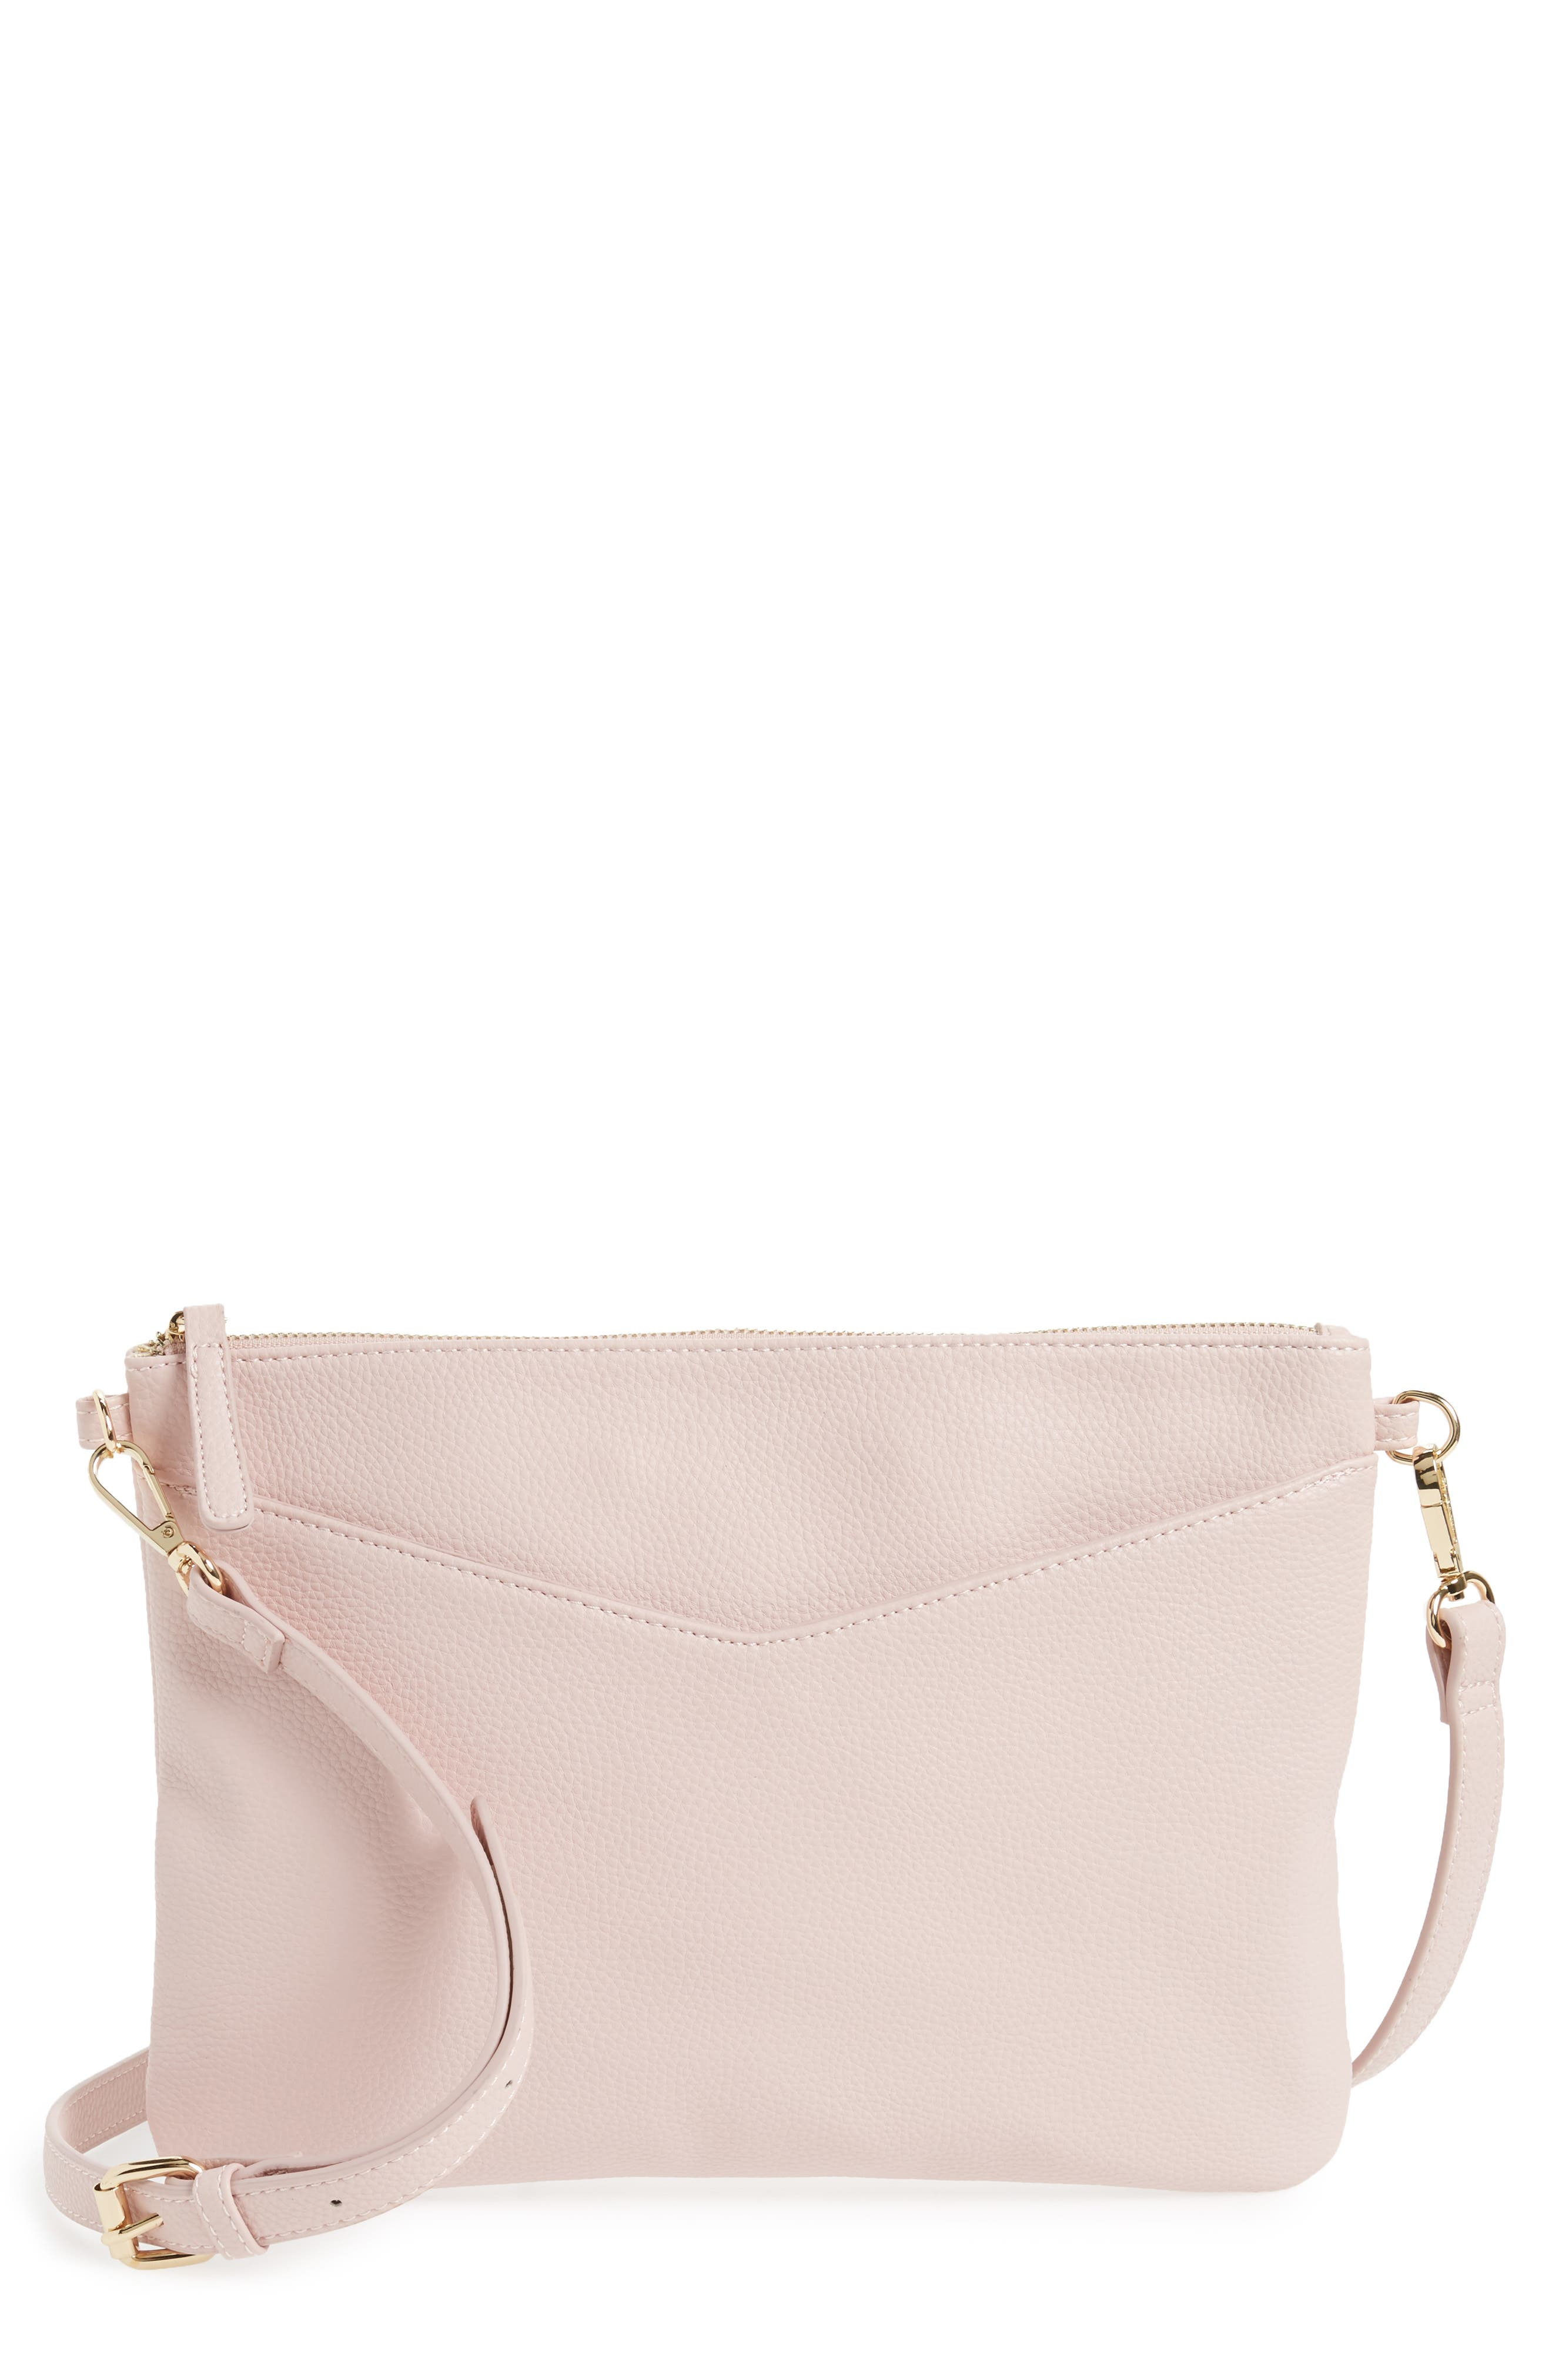 Alternate Image 1 Selected - Emperia Faux Leather Crossbody Bag